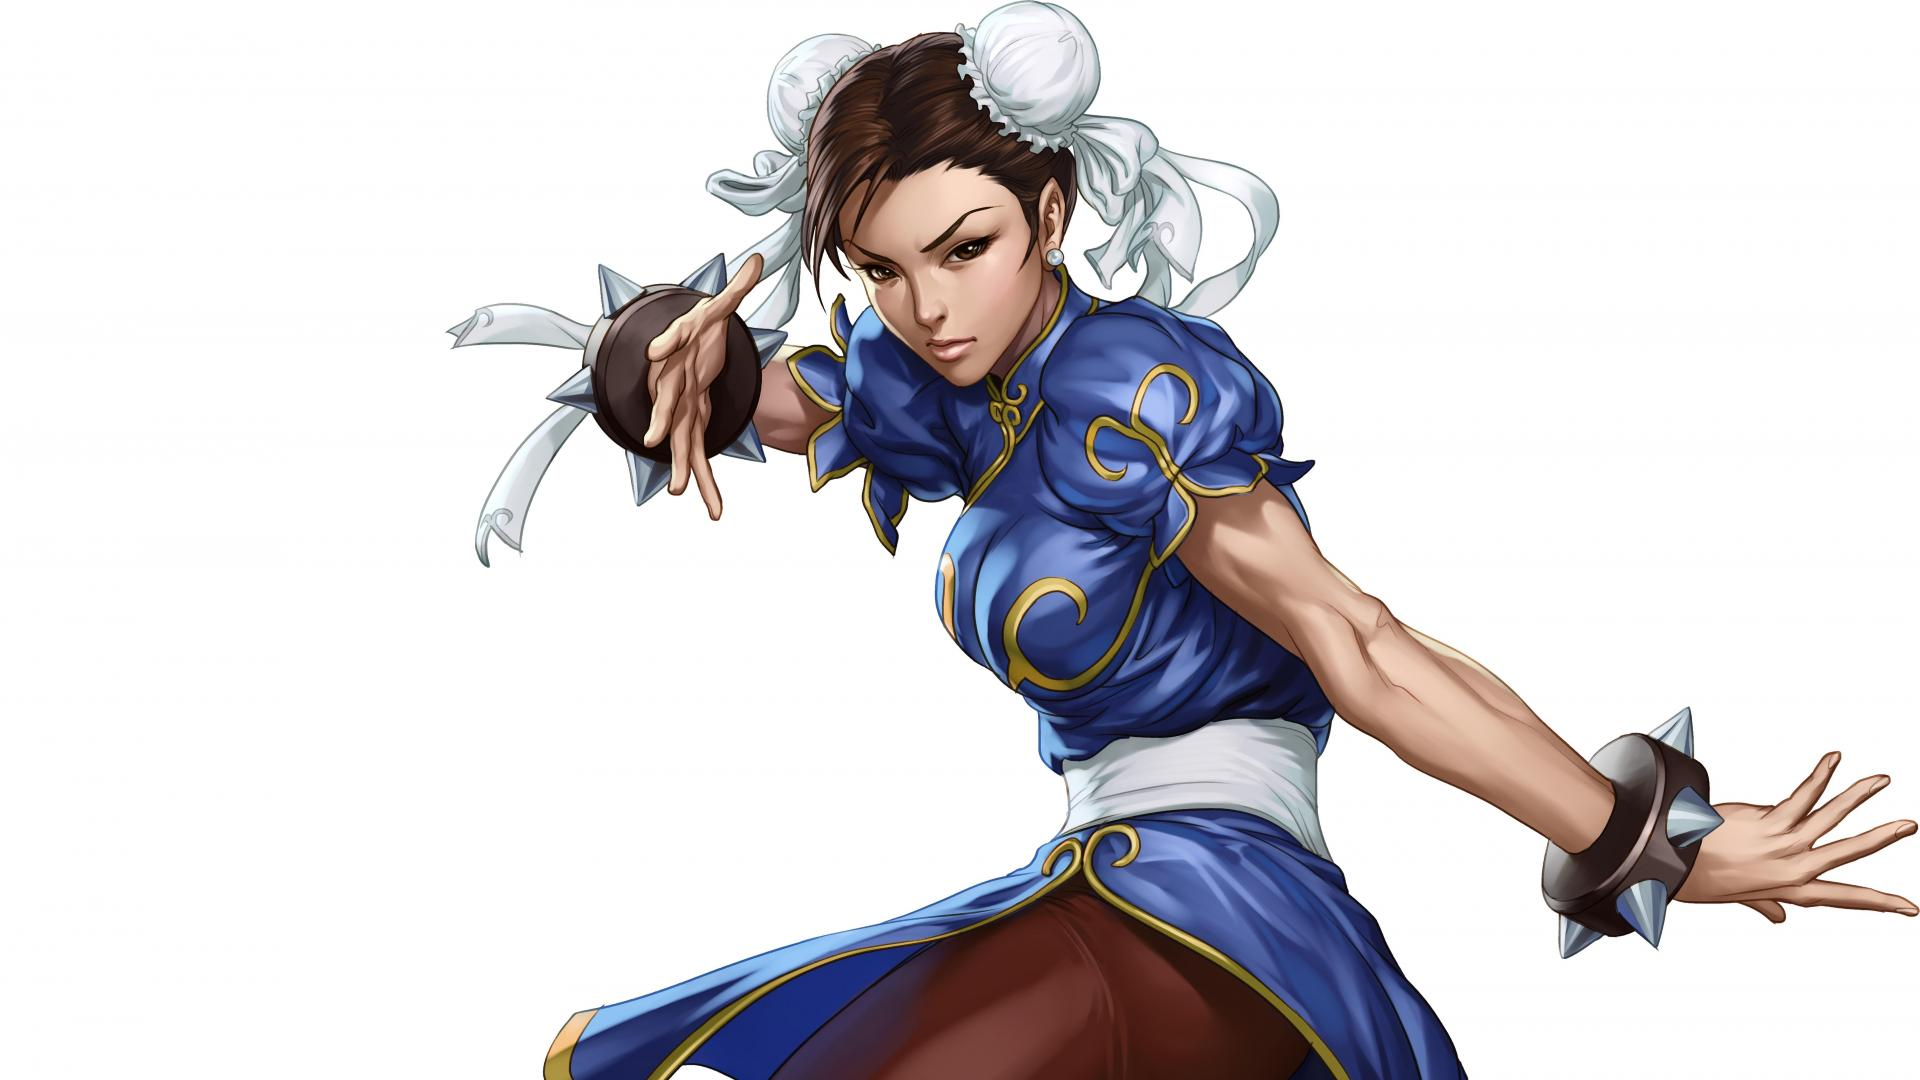 Free Download Chun Li Wallpaper Hd 1920x1080 For Your